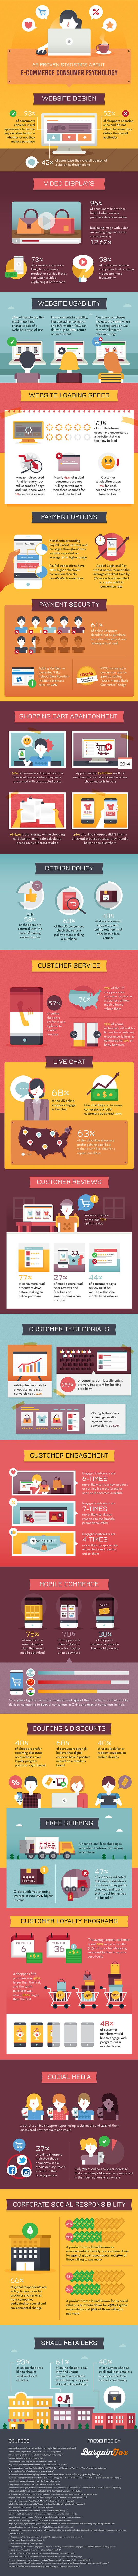 How to increase conversion rates on your ecommerce website (Infographic)